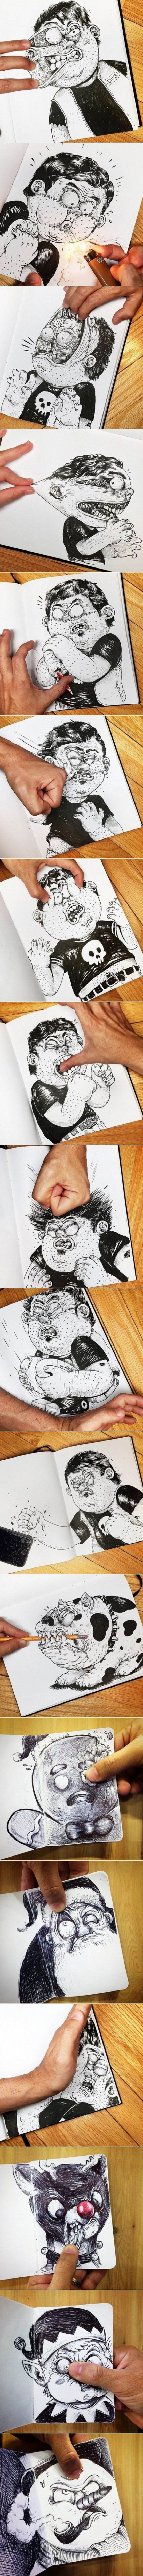 These Humoristic Drawings Are Fighting Their Creator